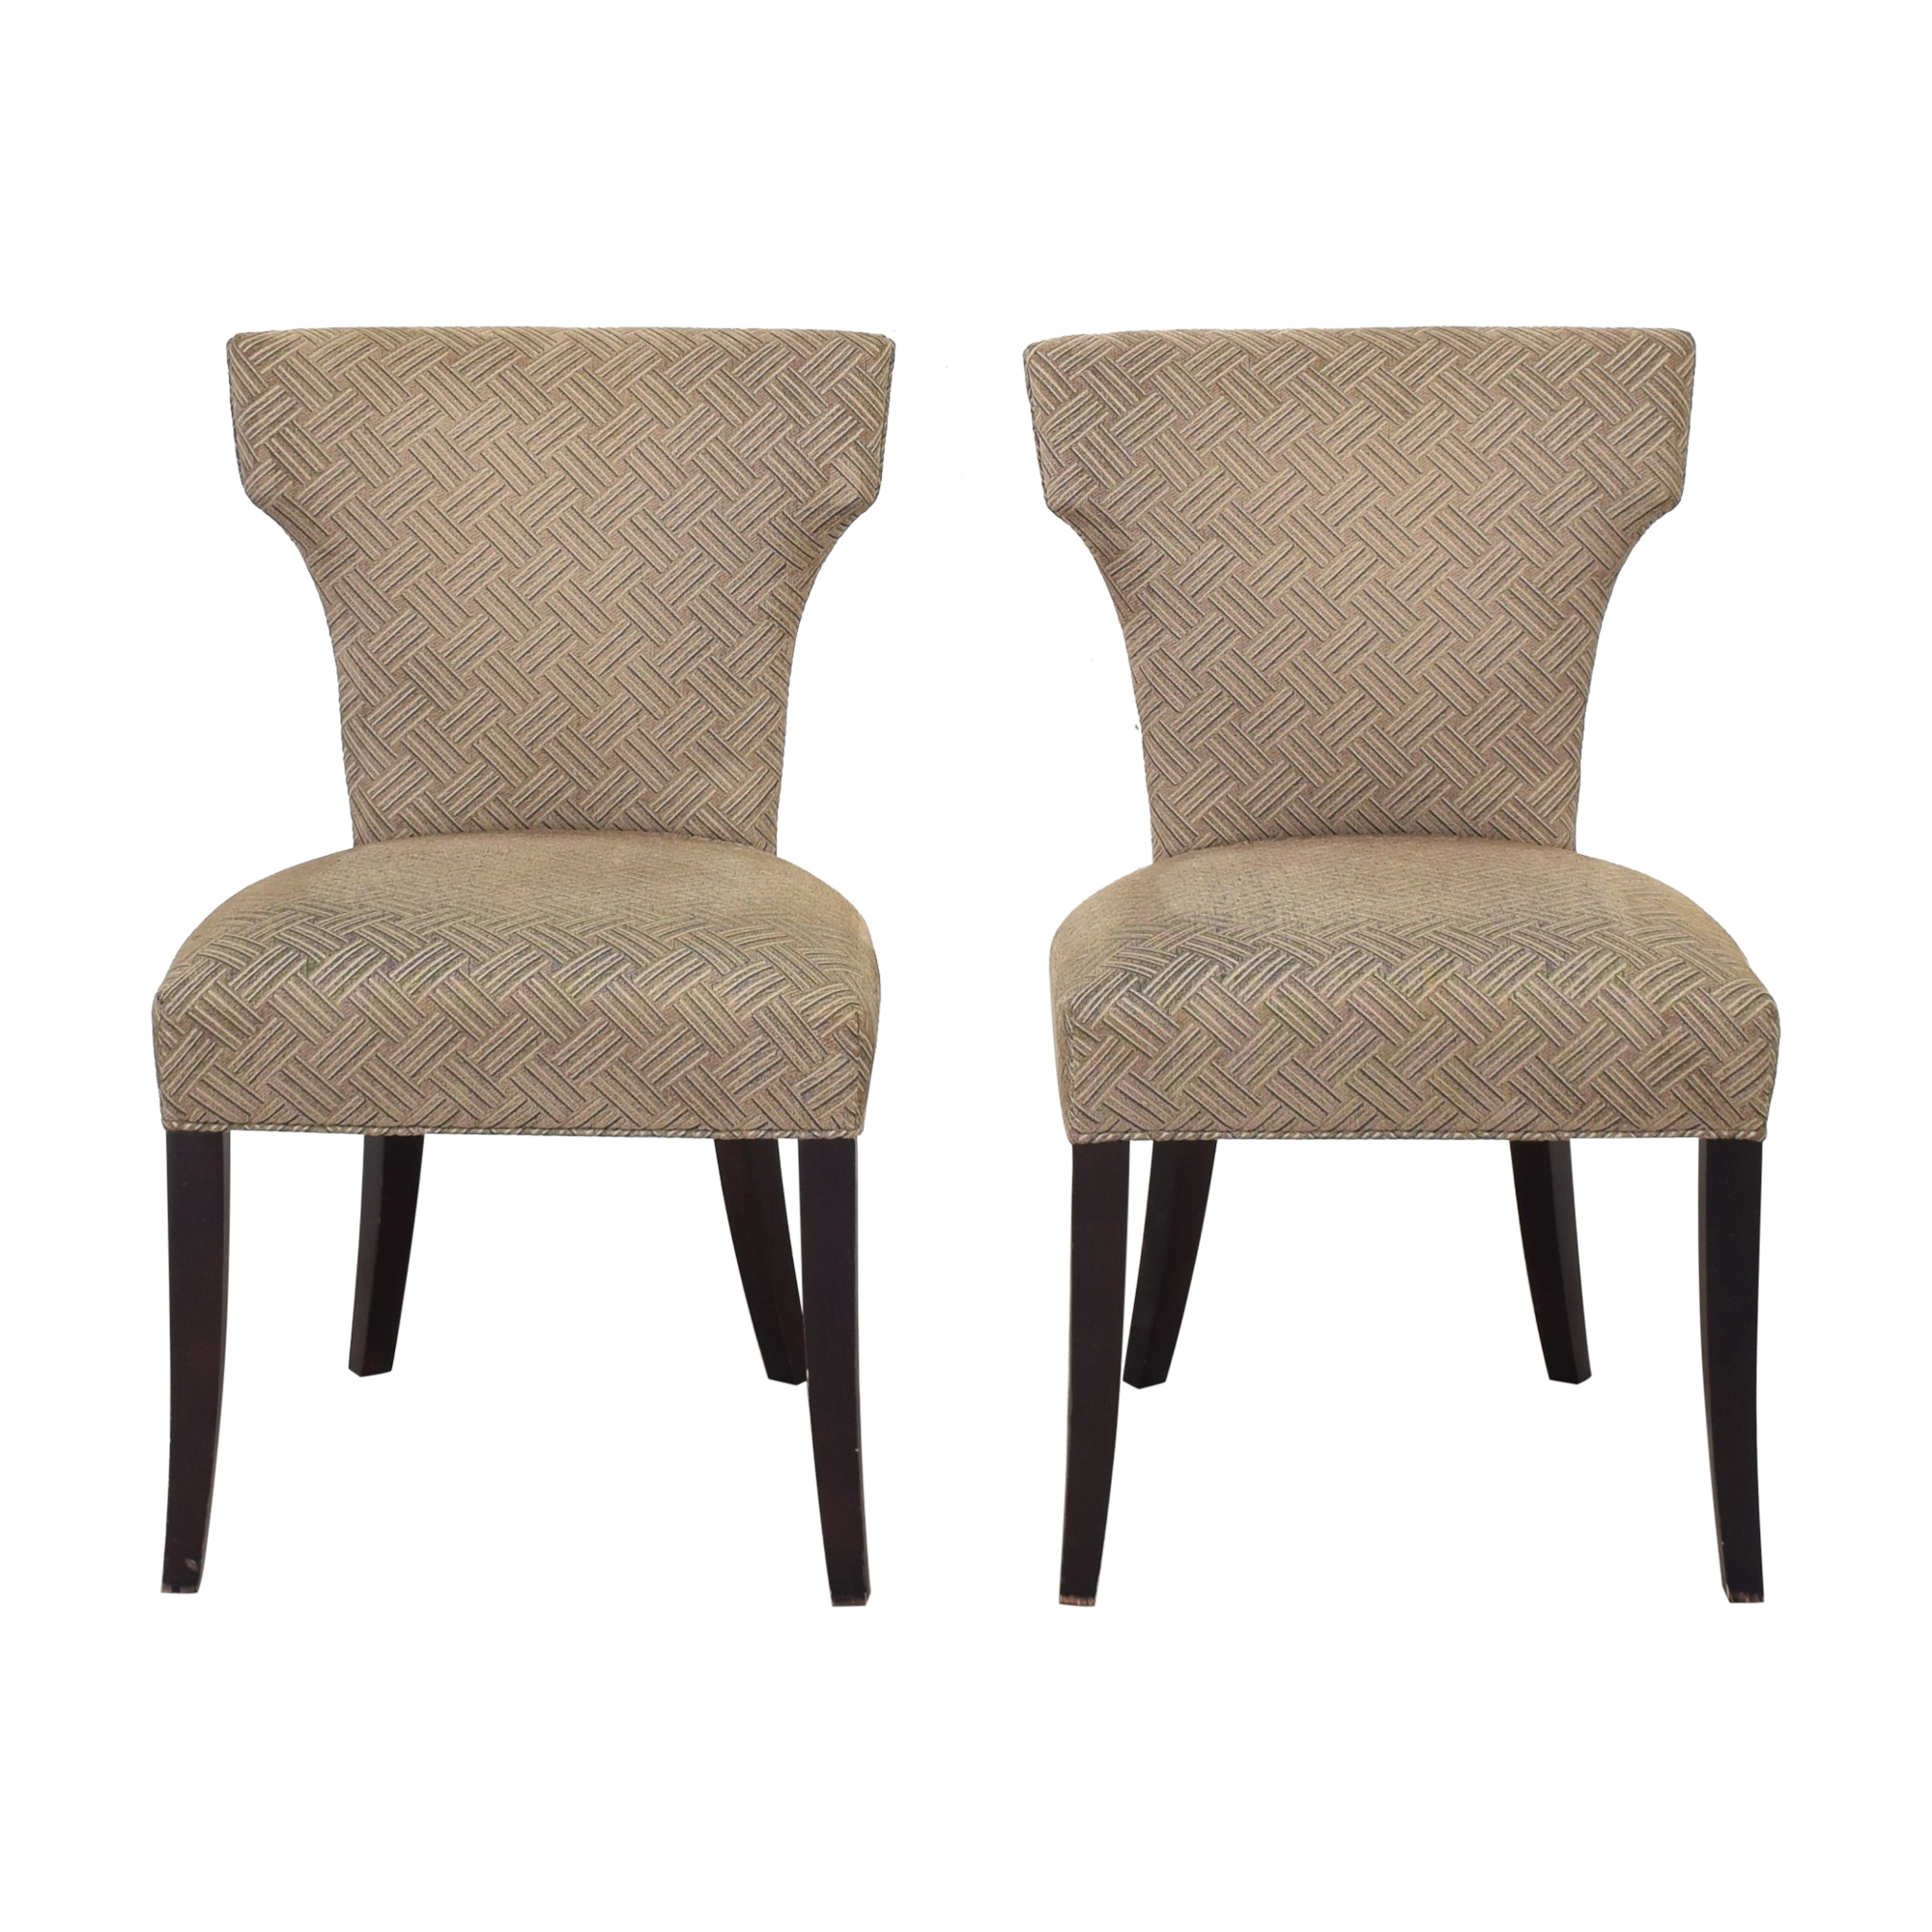 Crate & Barrel Crate & Barrel Sasha Upholstered Dining Chairs grey and brown